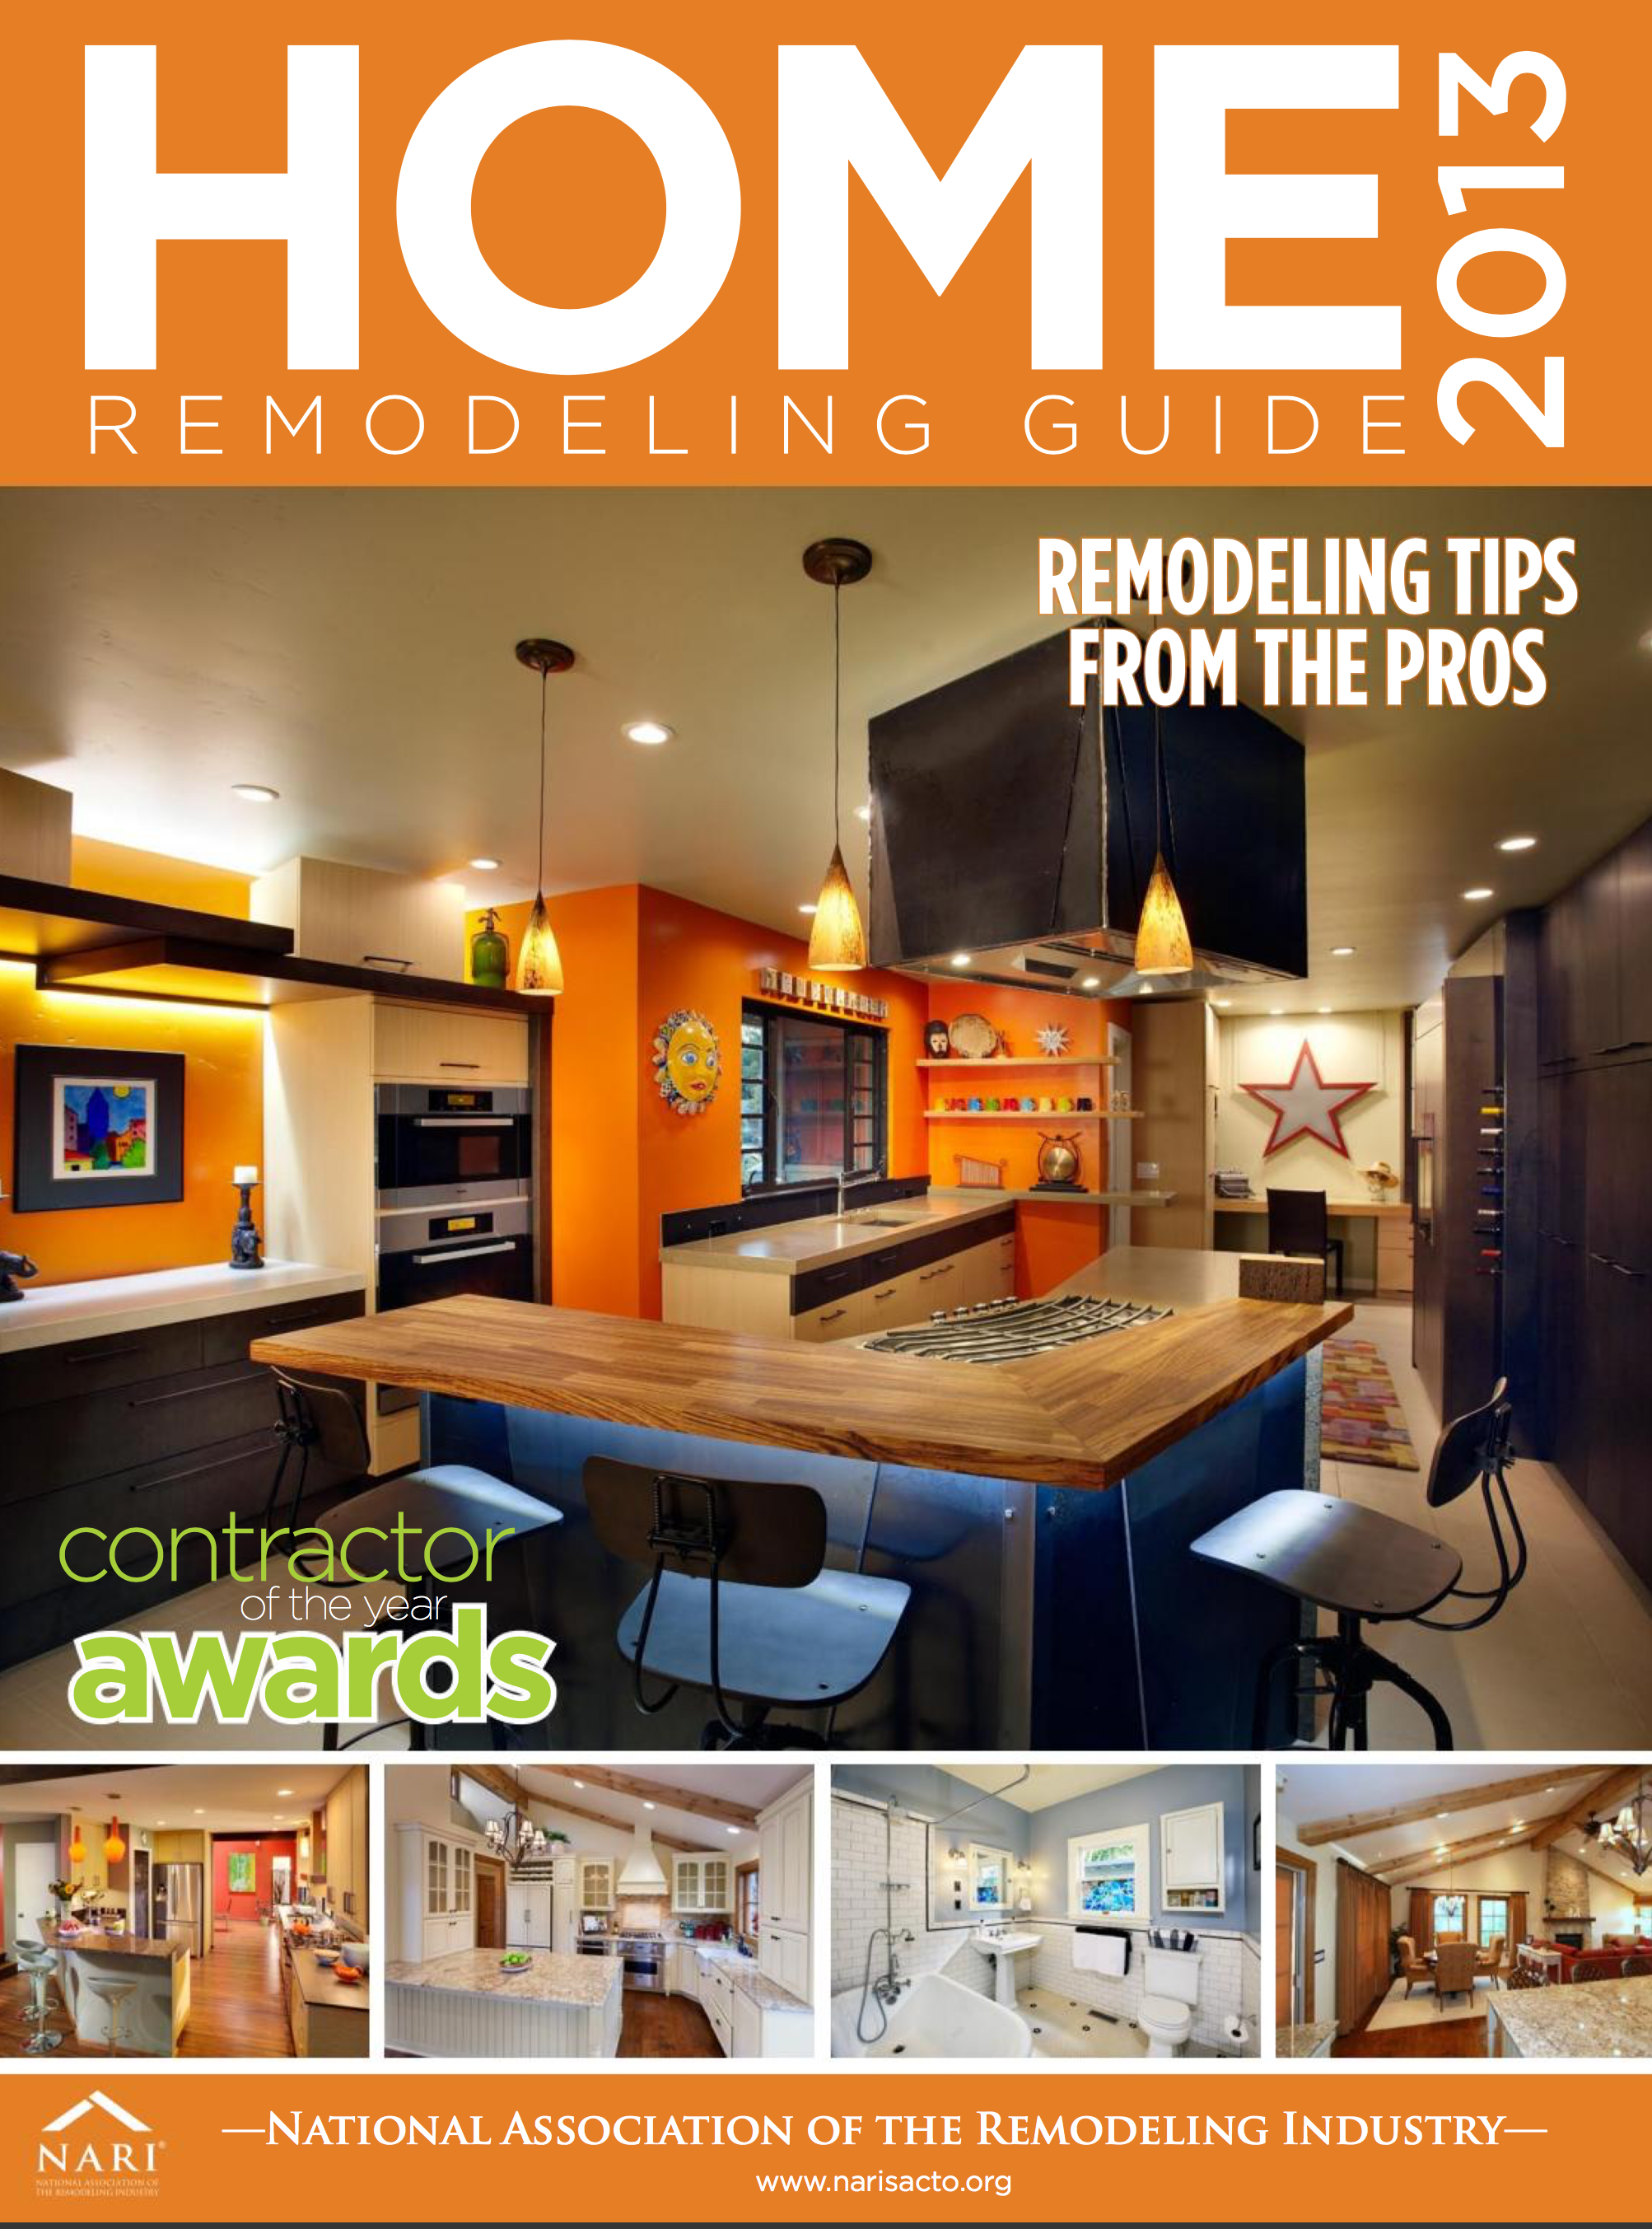 Home Remodeling Guide-2013